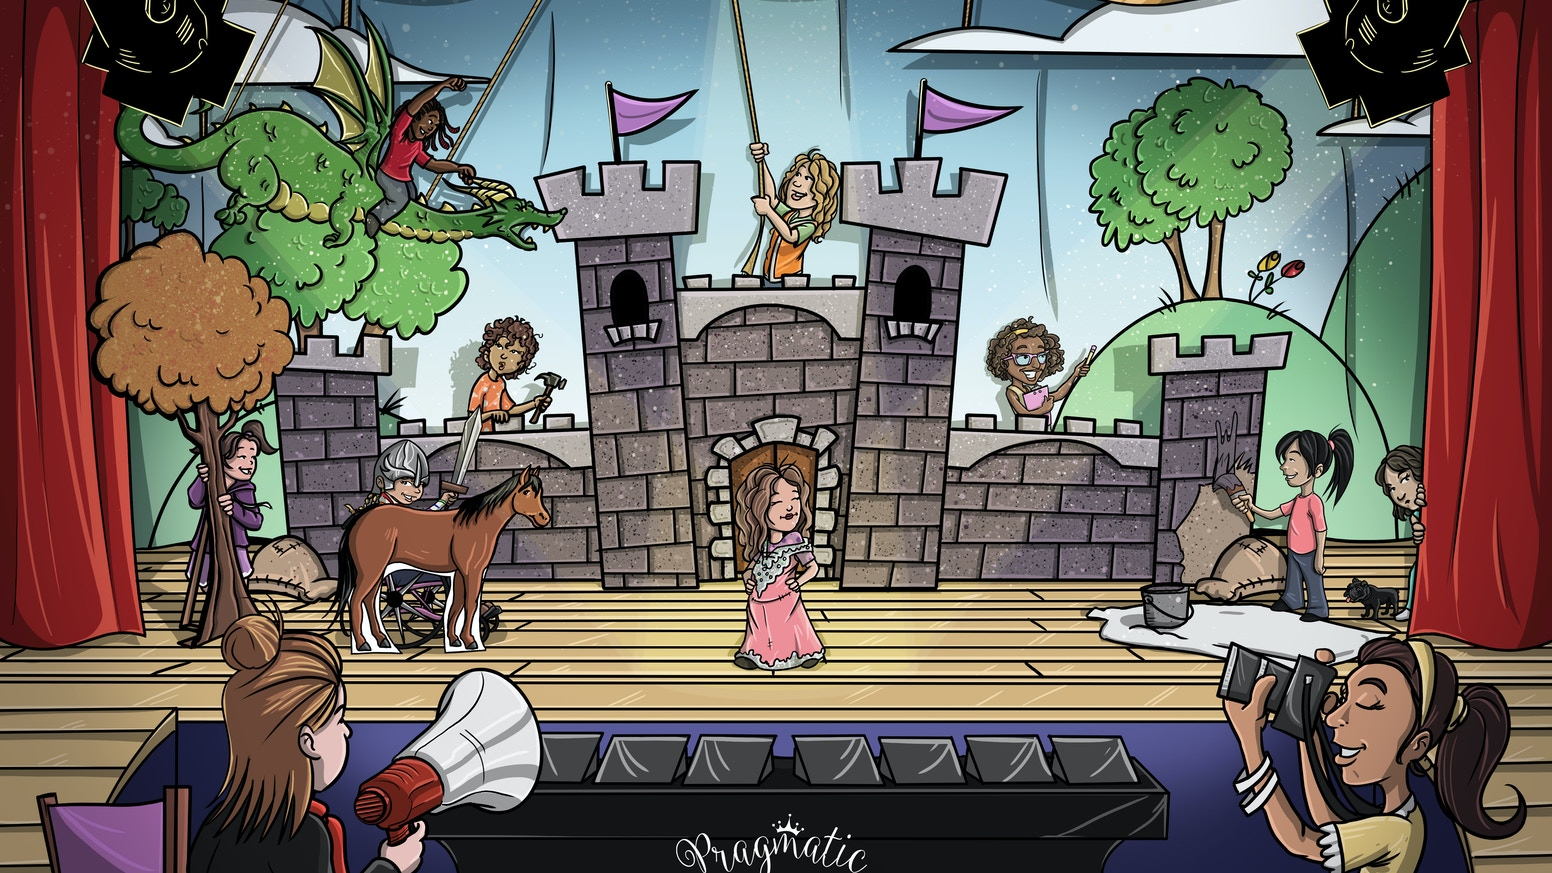 An A to Z compilation of short stories about self-reliance for children aged 3 to 8.